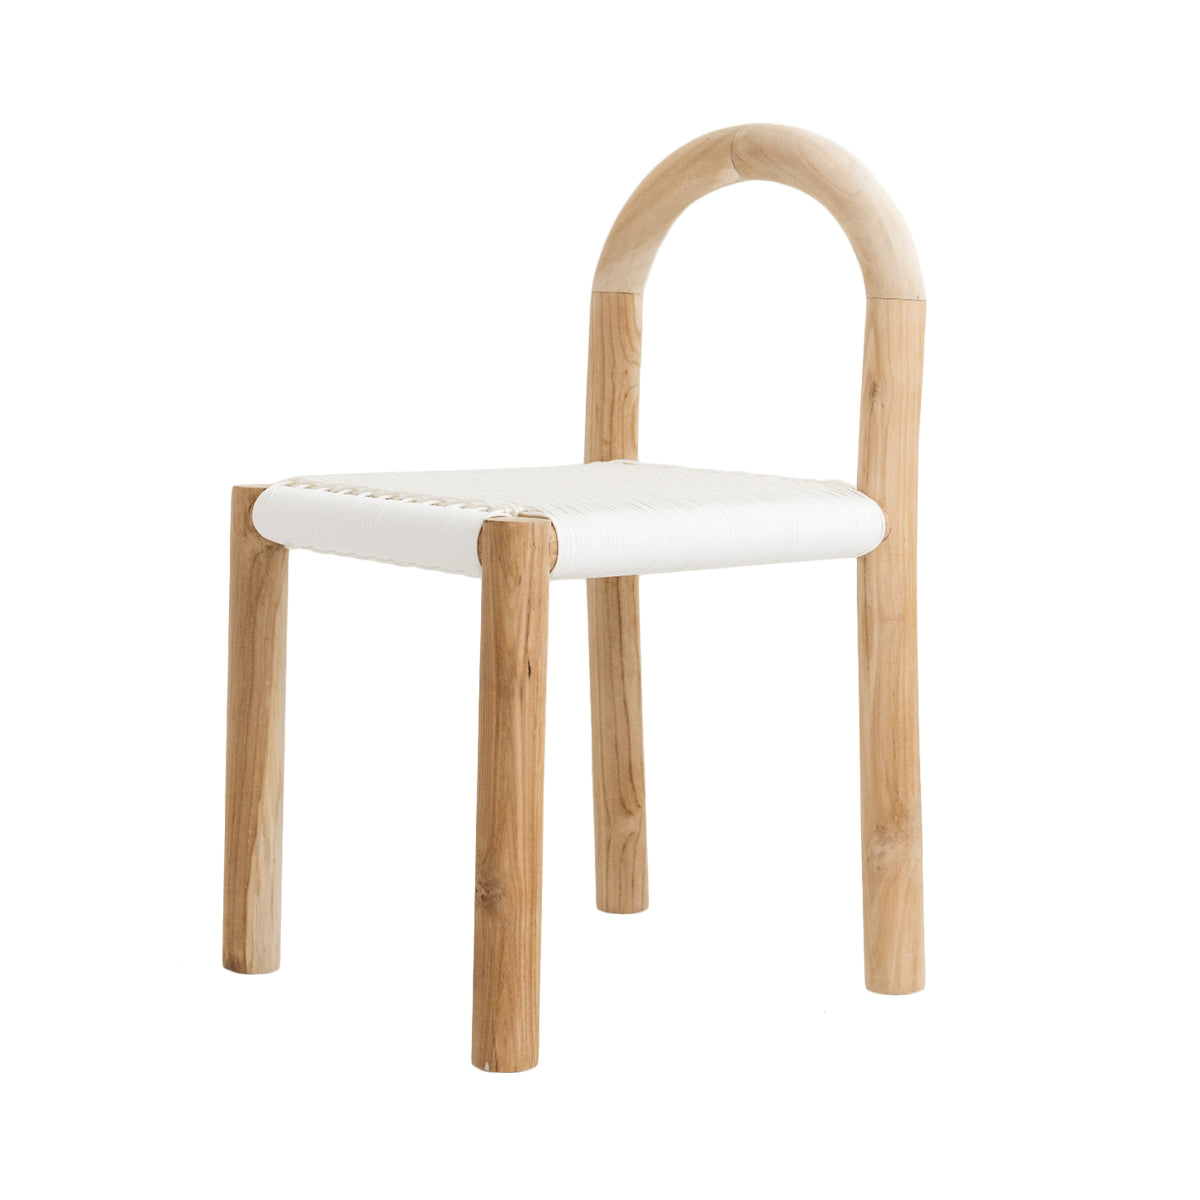 Minimiss White Rattan Chair